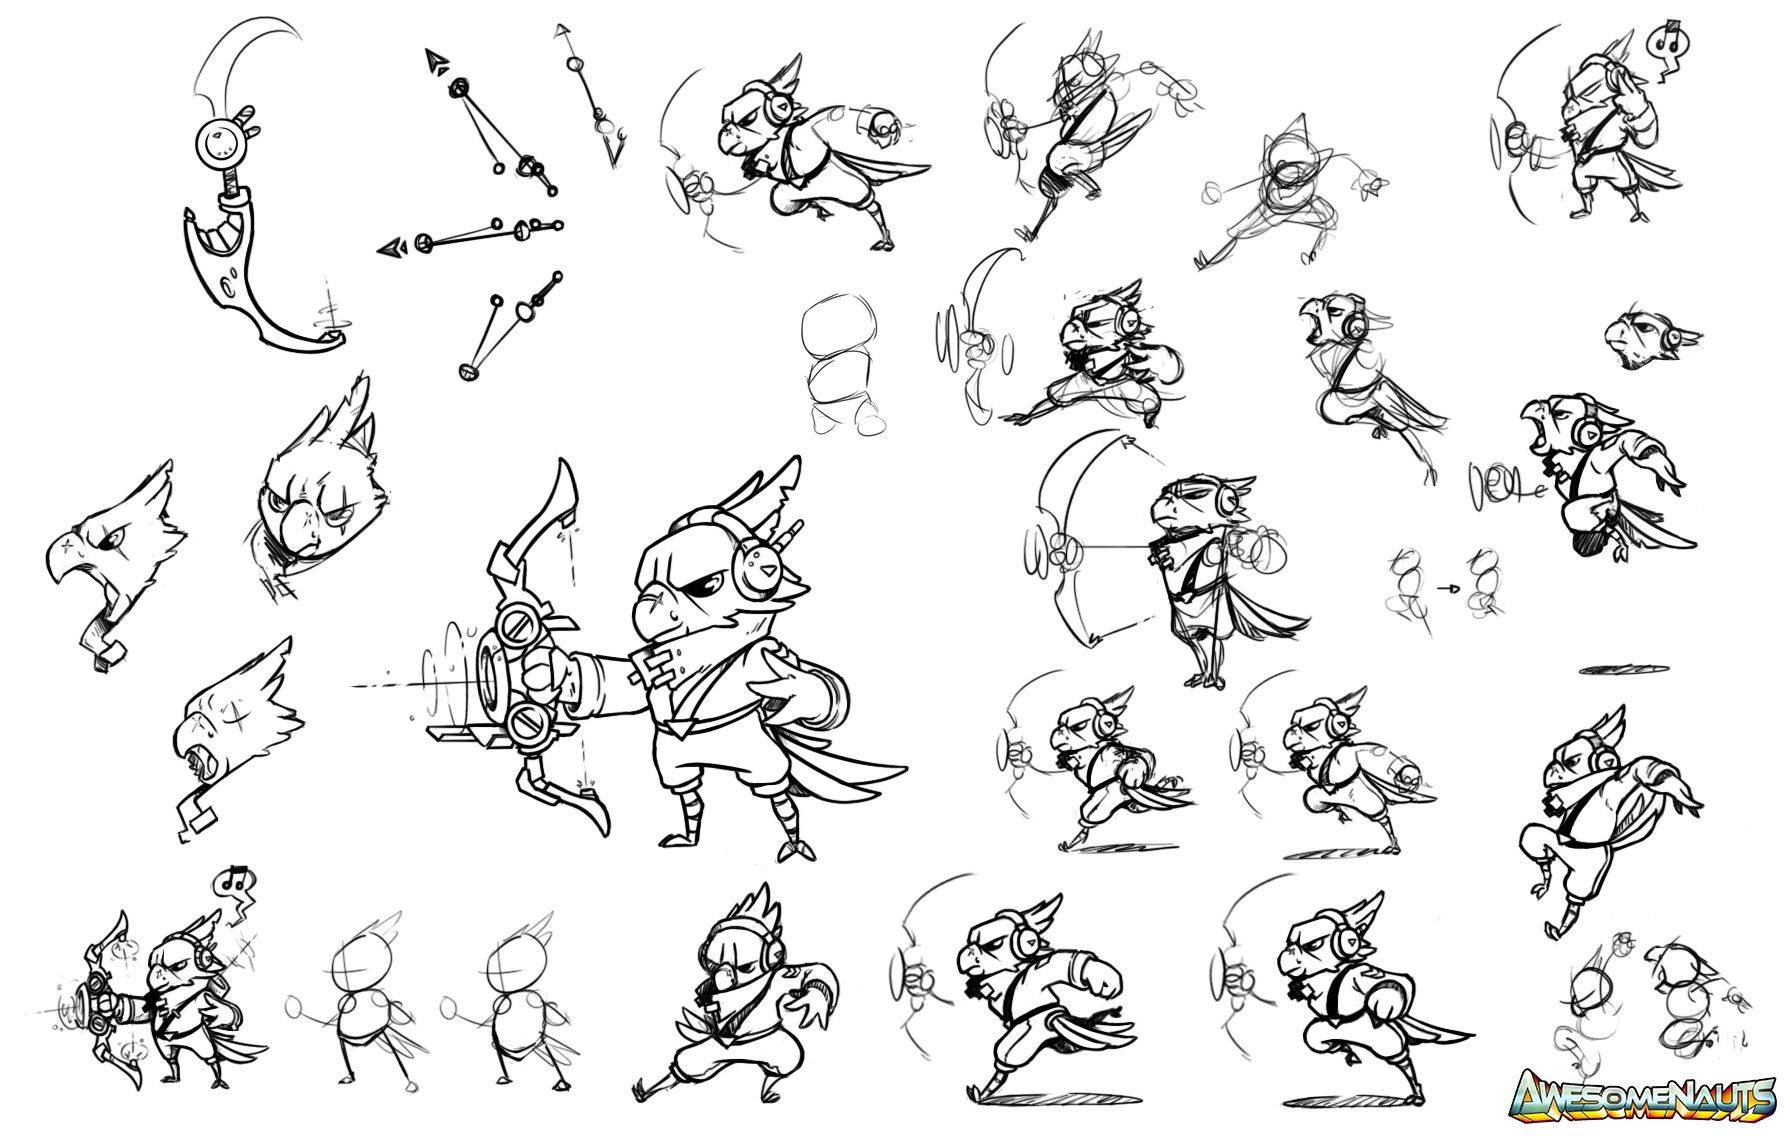 Joost's Dev Blog: Using key poses to prototype character animations